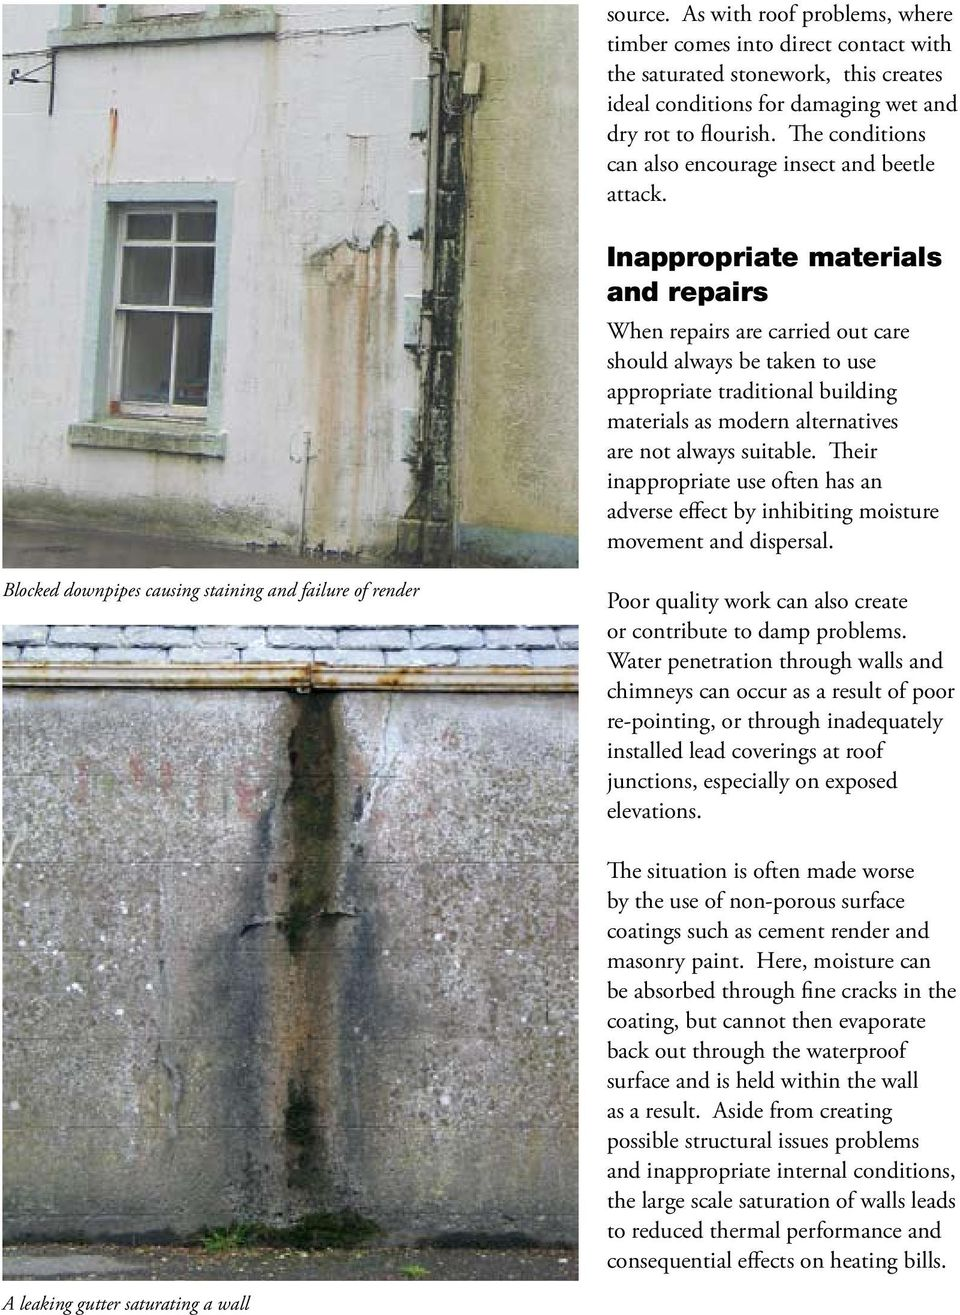 Inappropriate materials and repairs When repairs are carried out care should always be taken to use appropriate traditional building materials as modern alternatives are not always suitable.